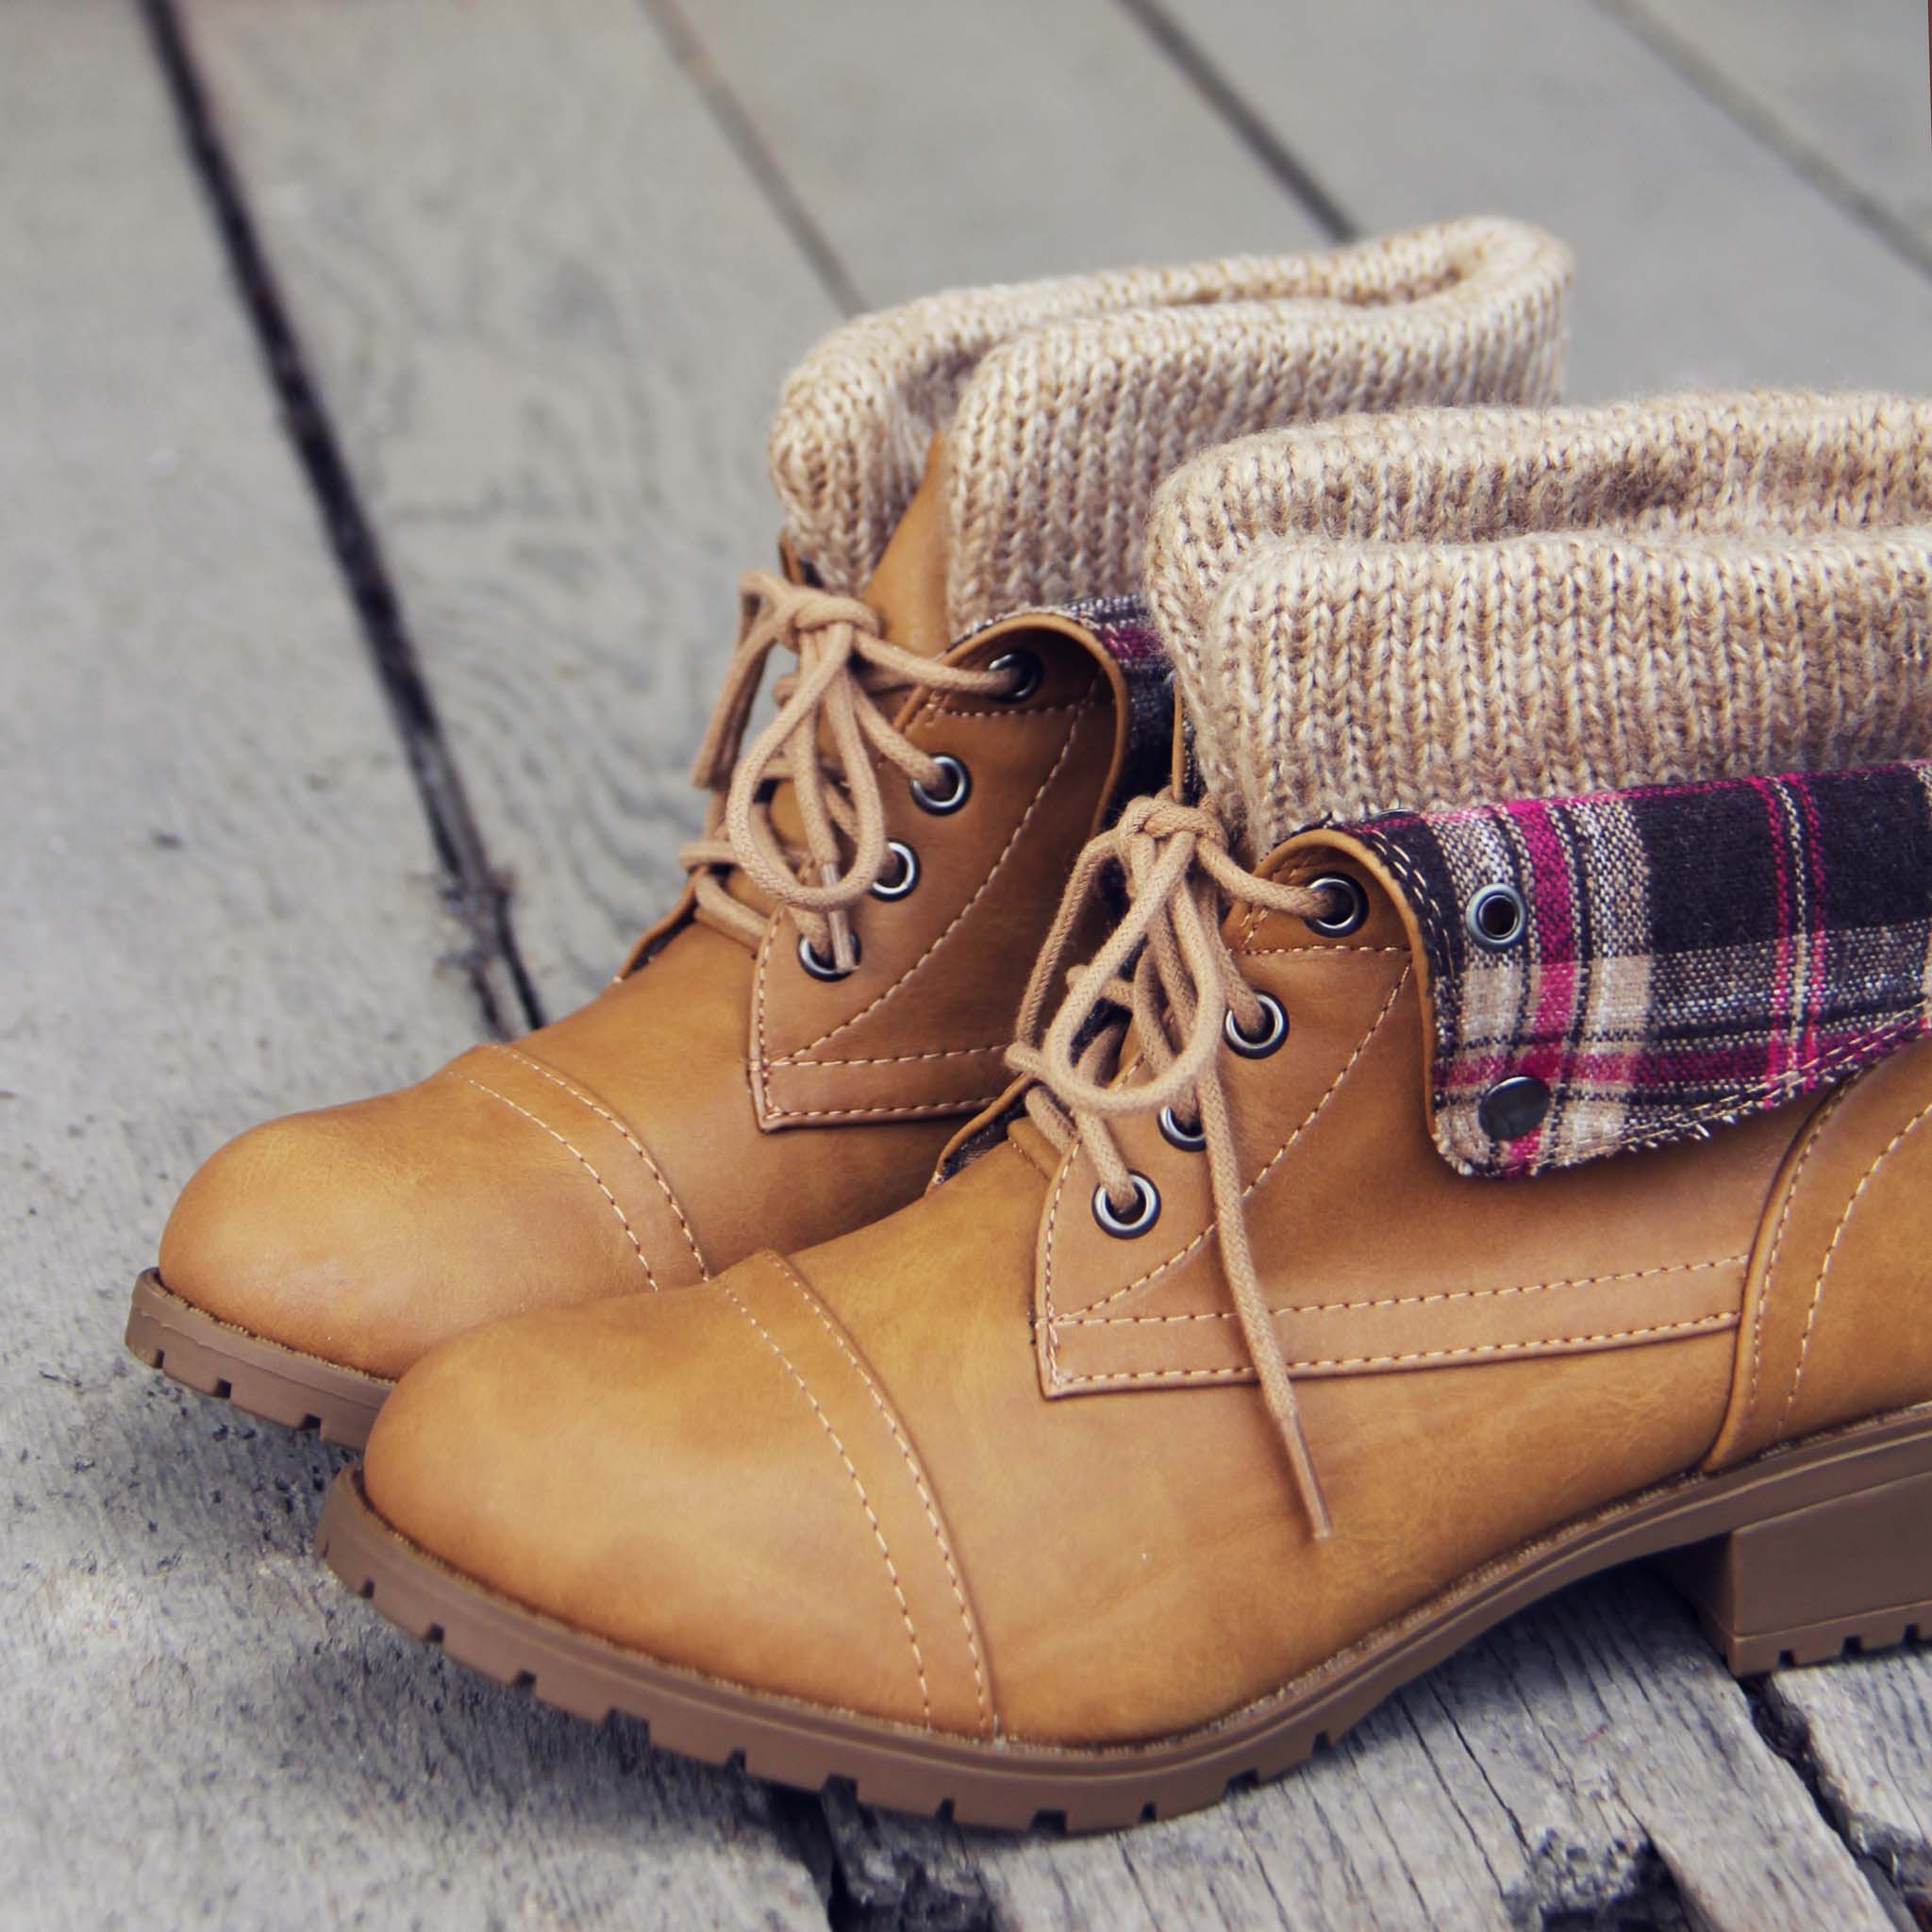 Fall Legend Booties In Sand Viatu Shoes Shoe Boots